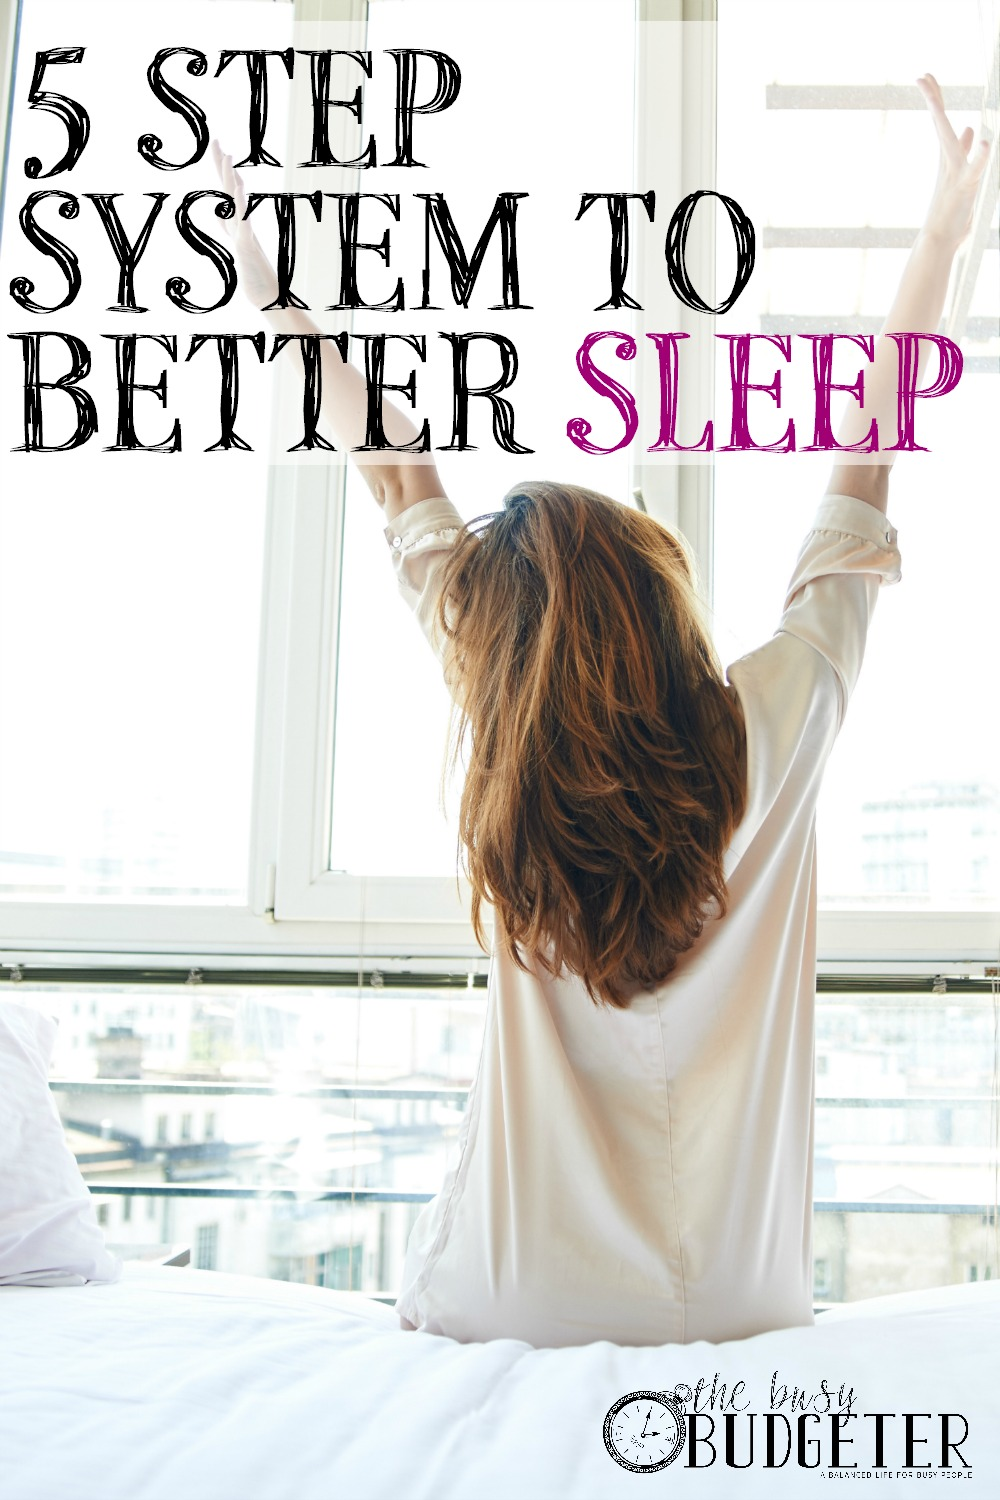 5 Step System to Better Sleep for Busy People. I pinned this last month and decided to try it and I'm shocked. I've struggled with managing my schedule and getting enough sleep for years. If I got 6 hours of sleep, I was lucky before. I was searching for a sleep schedule that would help and I found this. I'm on day 38 and feel AMAZING. I can't believe how much difference sleep makes in my life. Highly recommend!